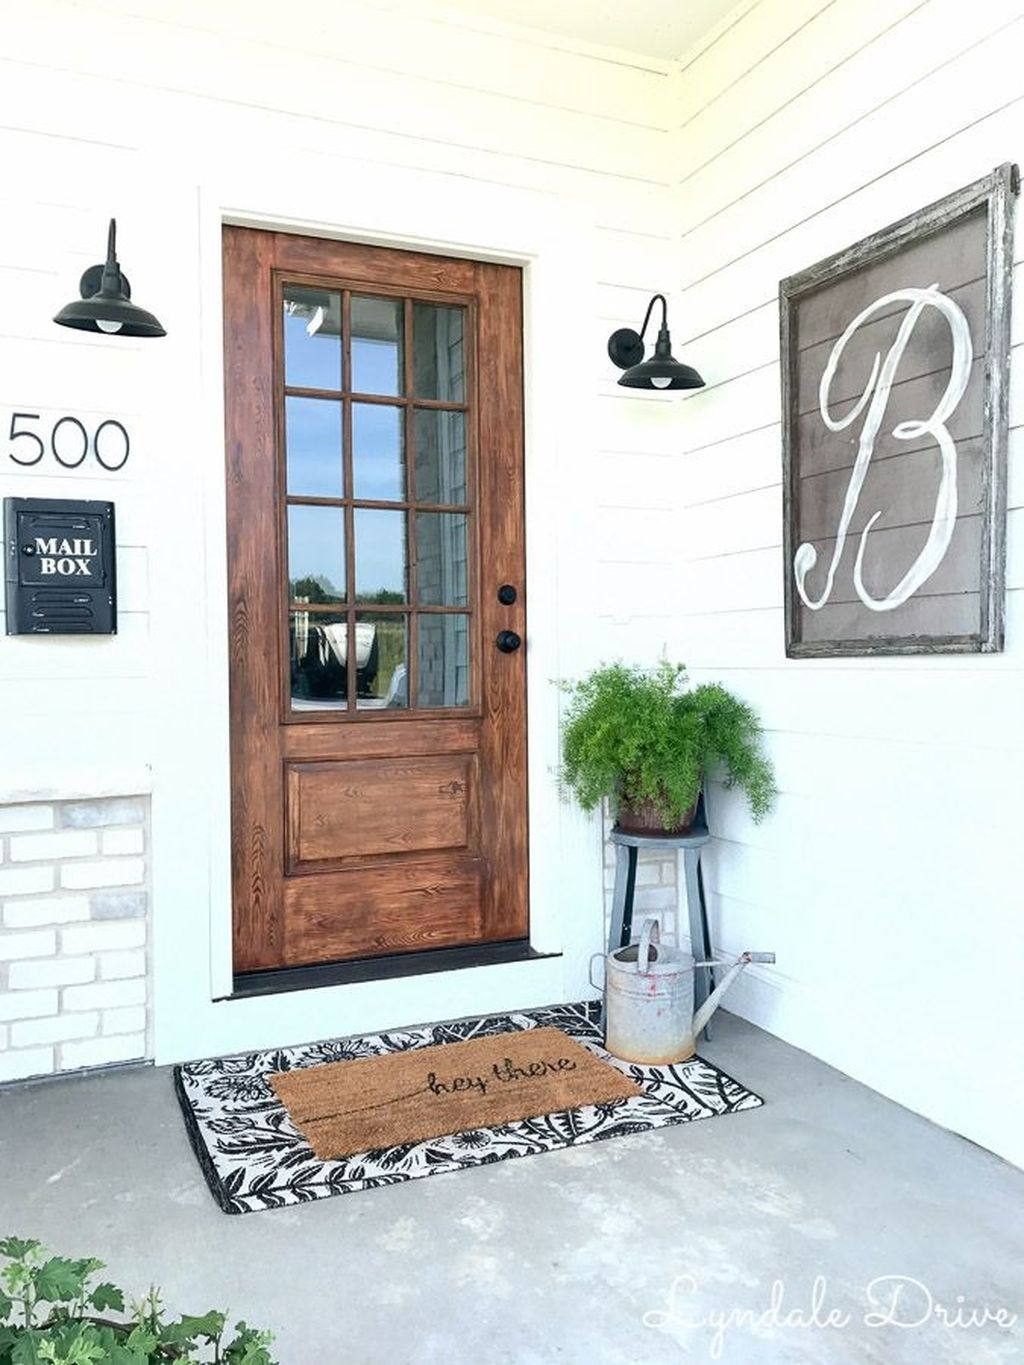 41 Cool Wood Door Stained Ideas For Pretty Farmhouse Front Porch Decorating Farmhouse Doors Farmhouse Front Porches